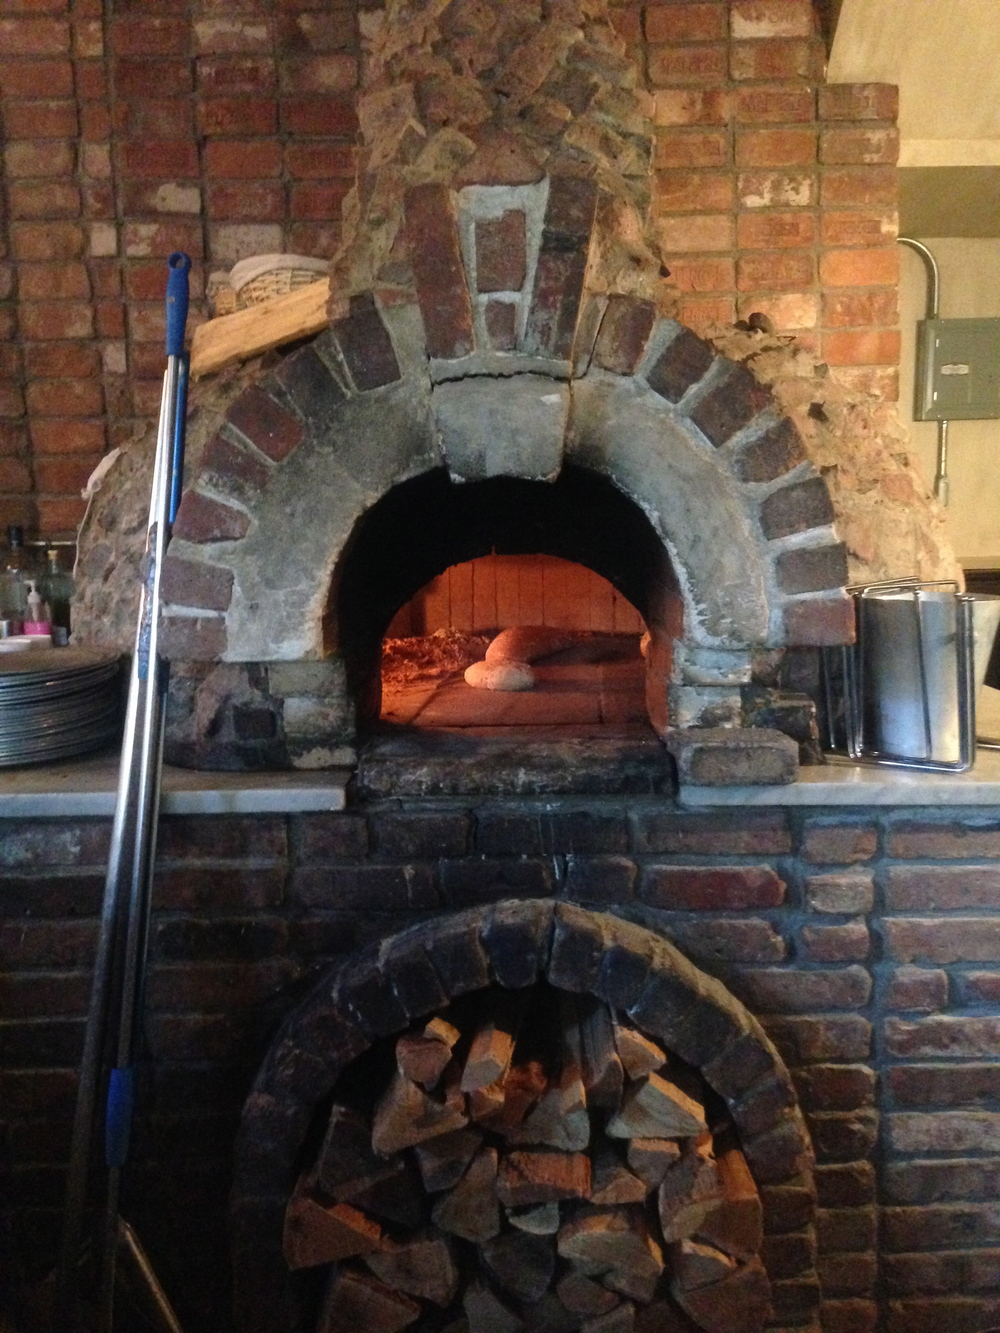 BK17 is now using the wood oven of Toby's Public House!